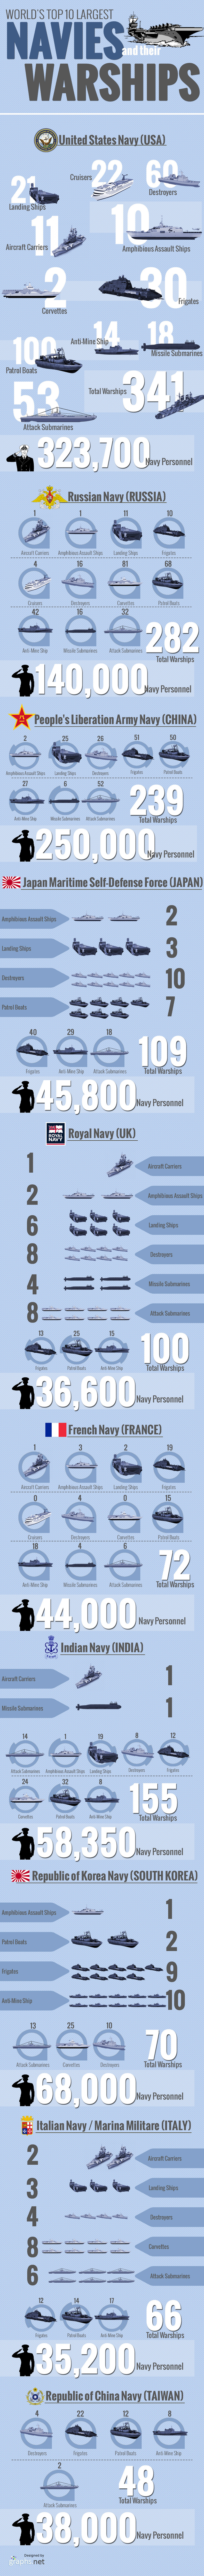 World's Top 10 Largest Navies and their Warships